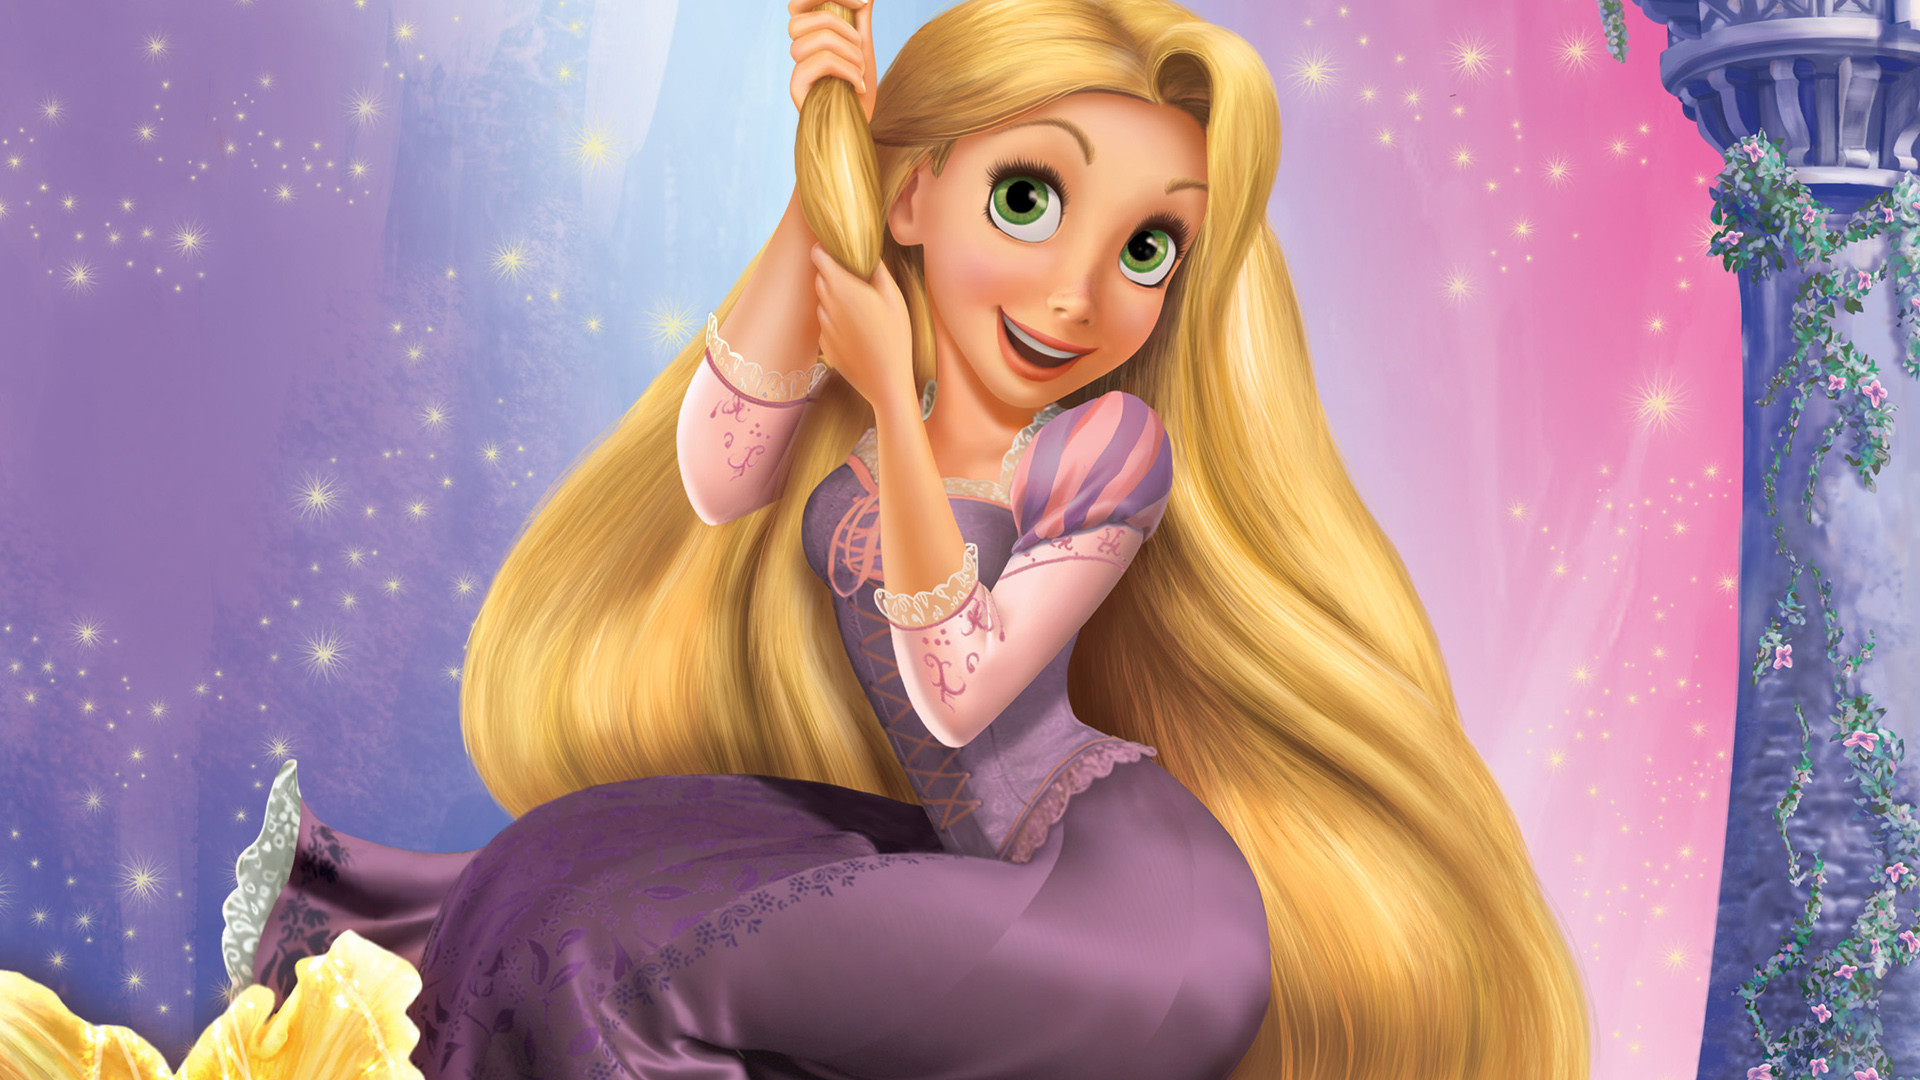 Tangled Wallpaper HD (71+ images)